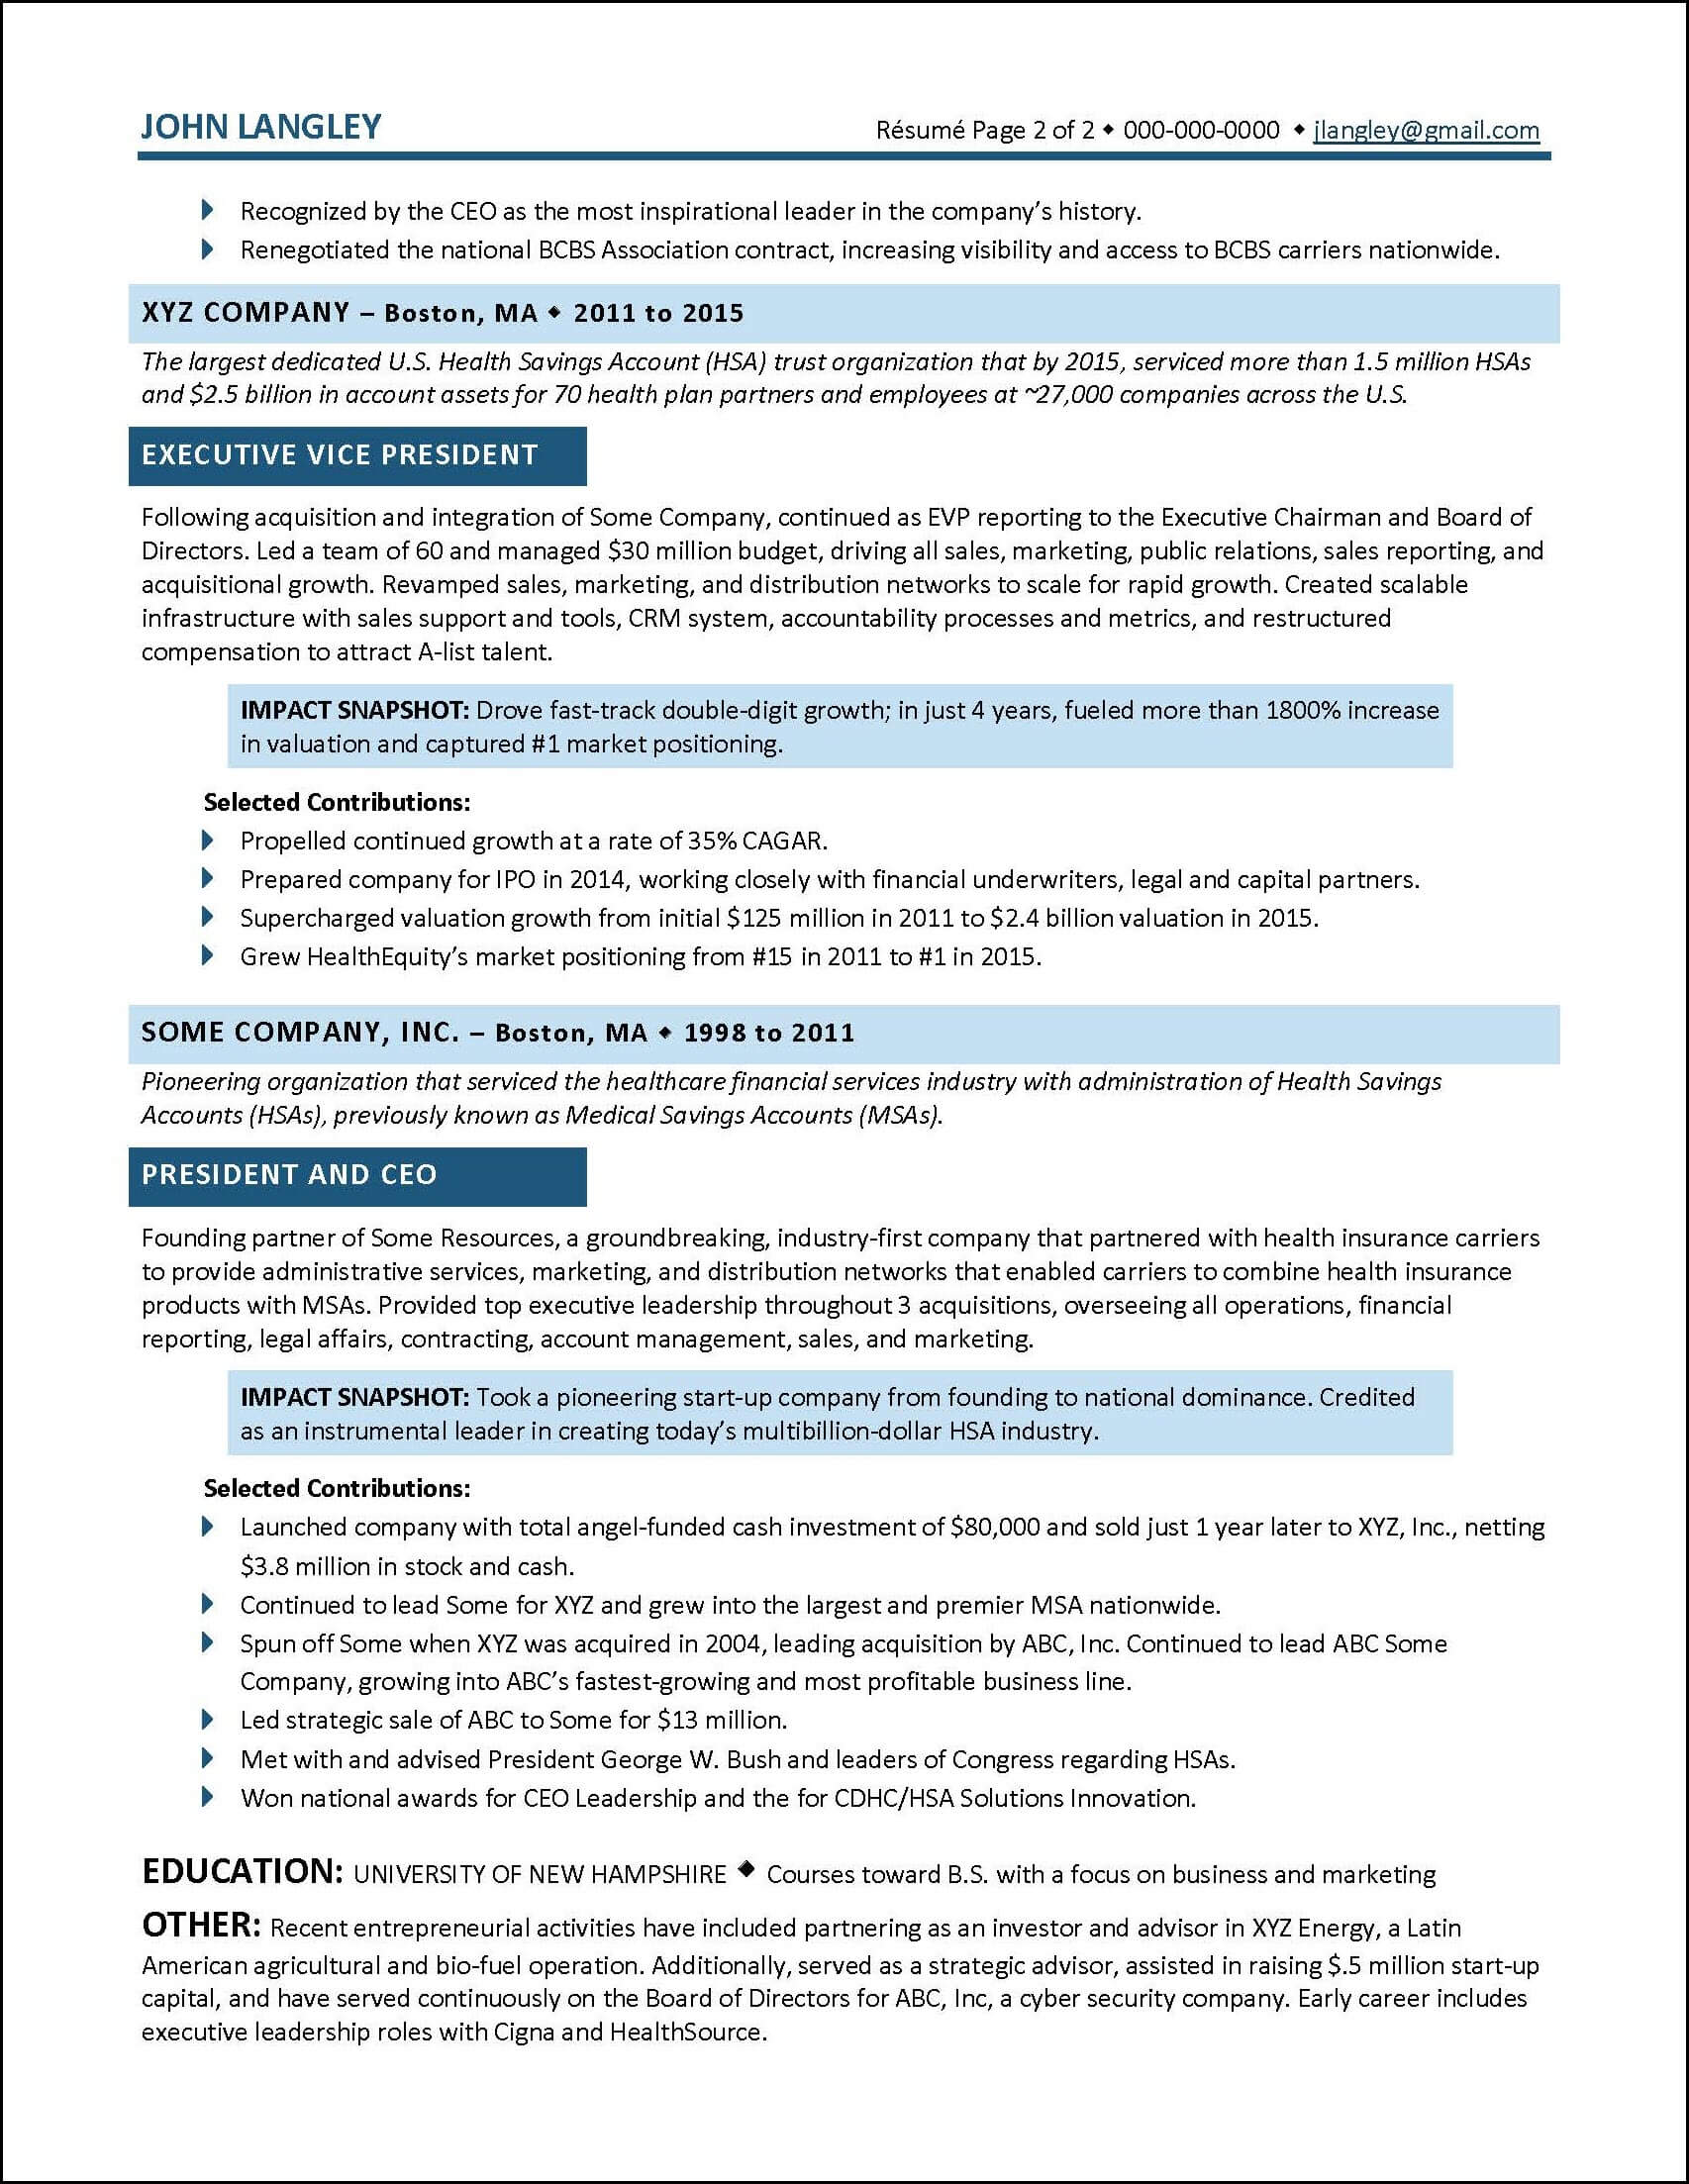 Example Insurance Industry Executive Resume pg 2